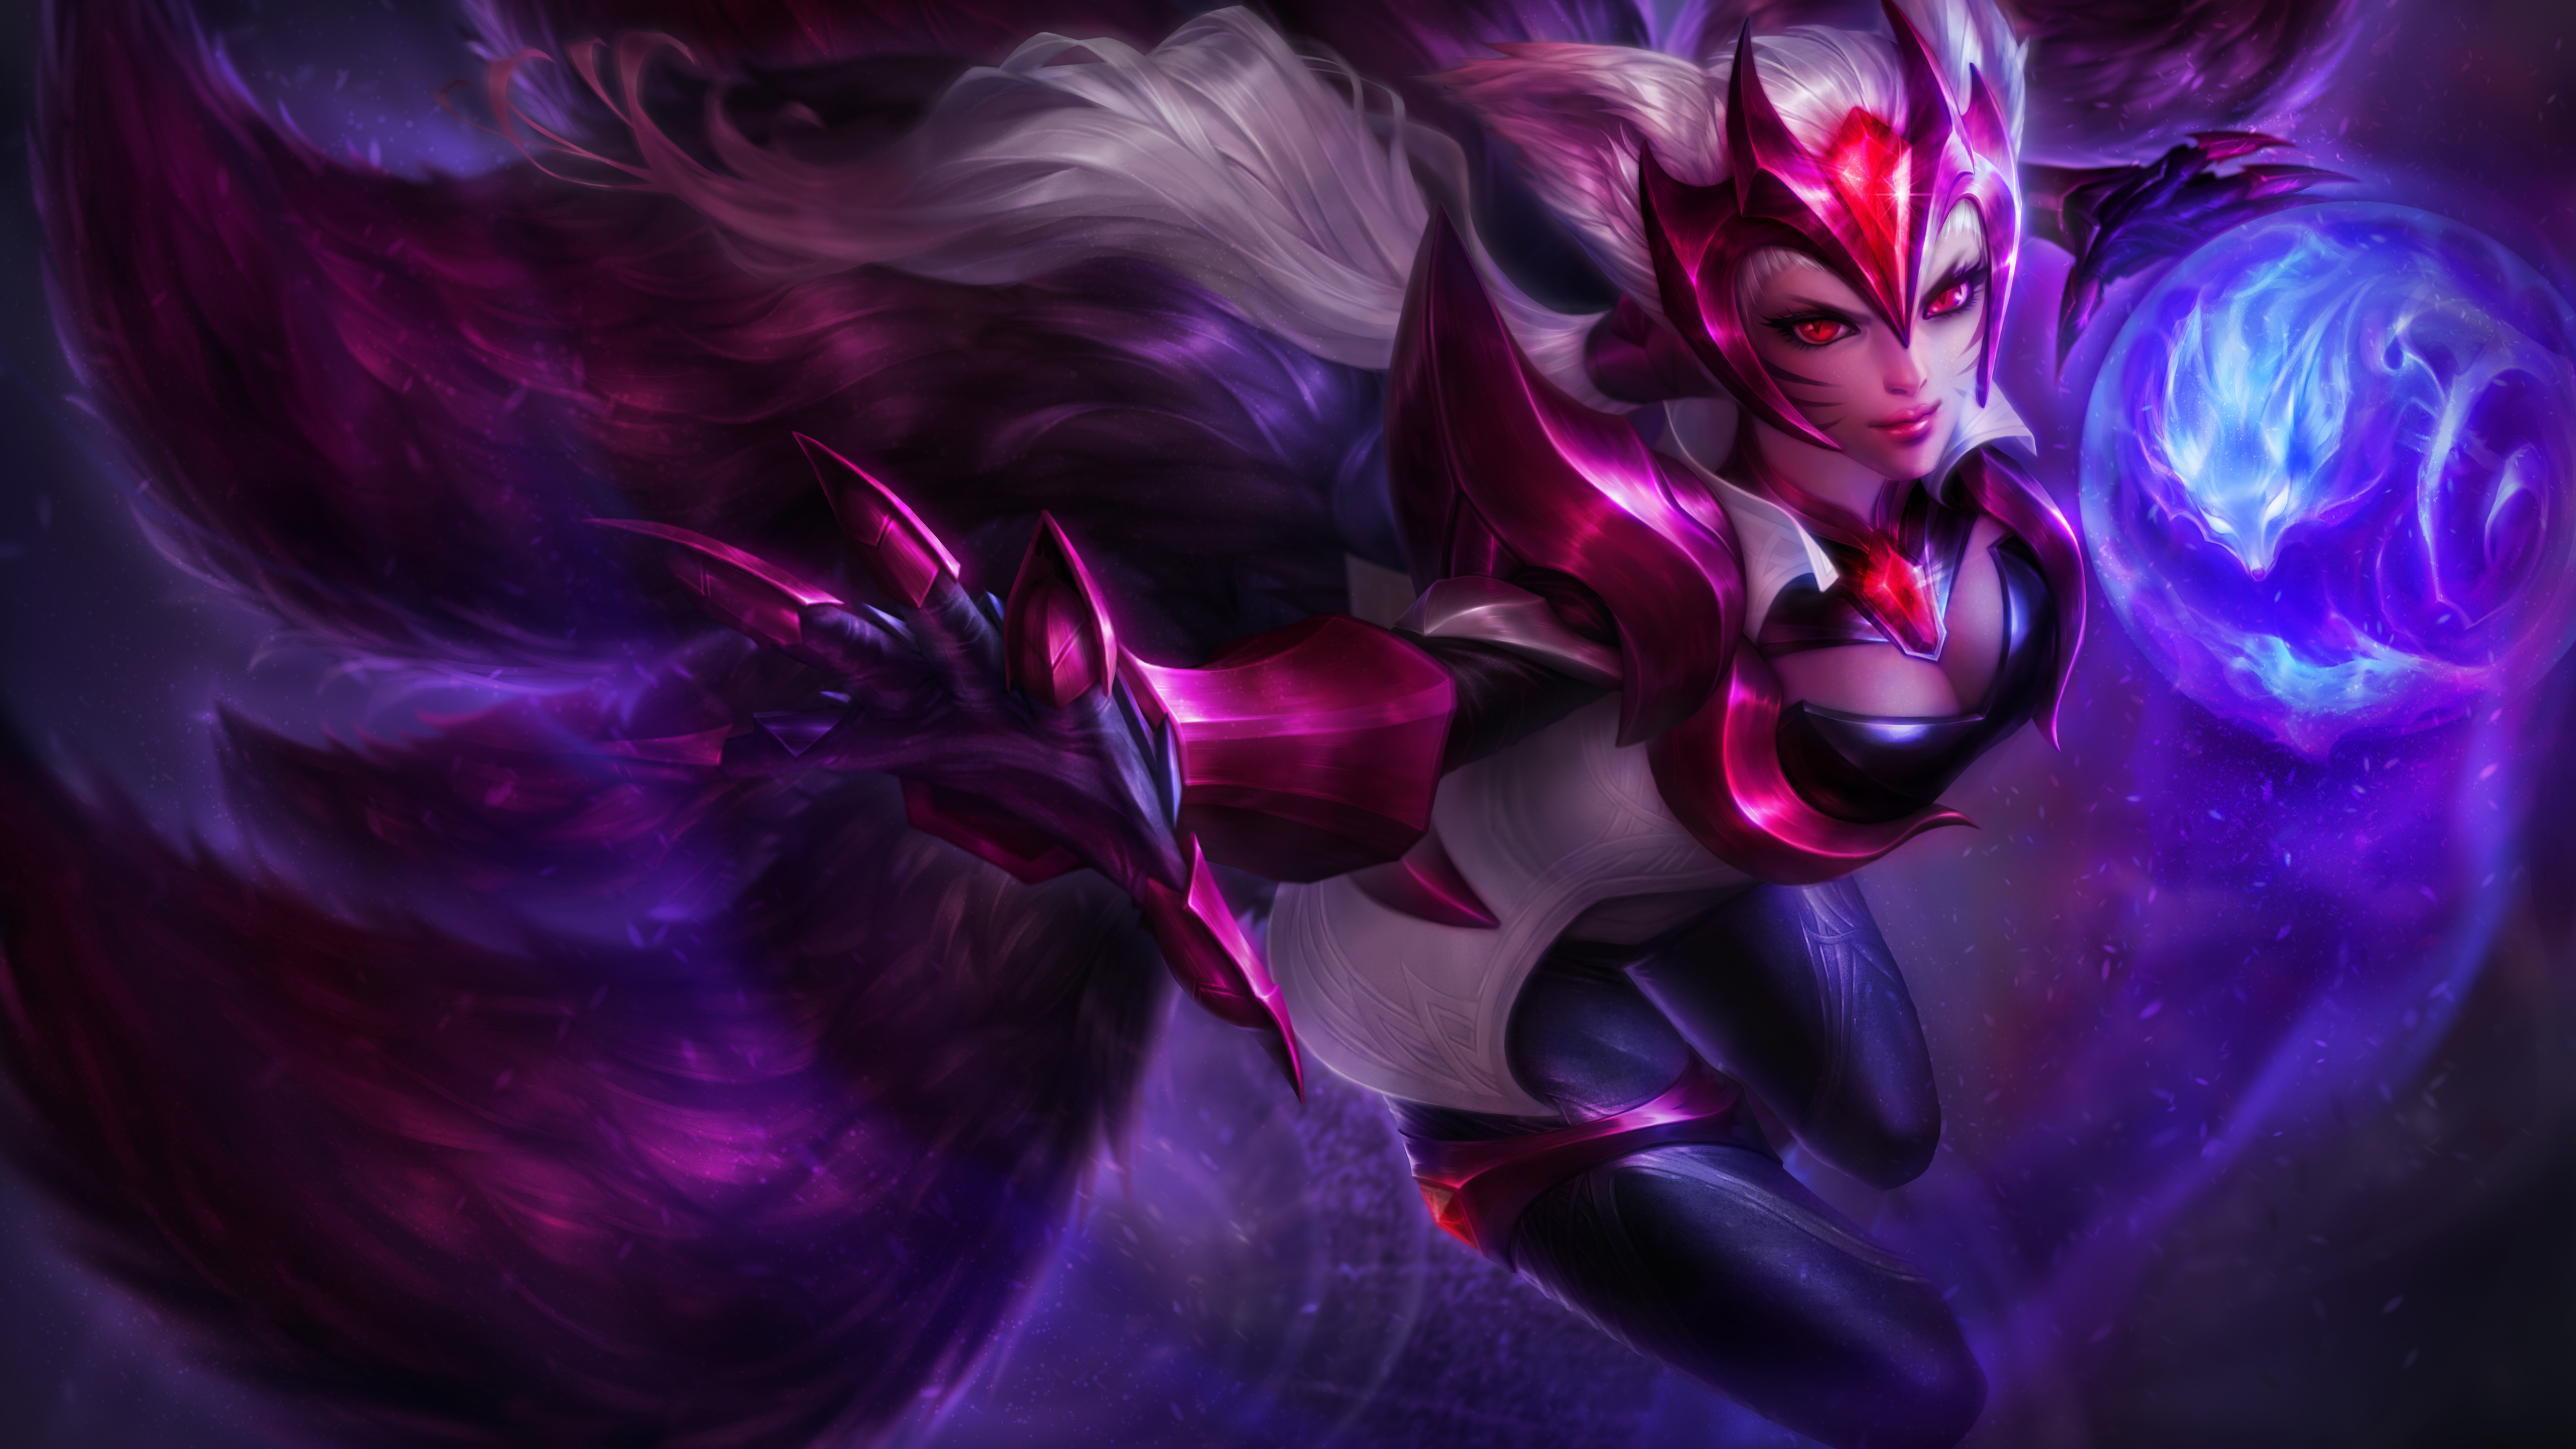 challenger ahri league of legeneds 4k 1553074685 - Challenger Ahri League Of Legeneds 4k - league of legends wallpapers, hd-wallpapers, games wallpapers, digital art wallpapers, artwork wallpapers, artist wallpapers, ahri wallpapers, 8k wallpapers, 5k wallpapers, 4k-wallpapers